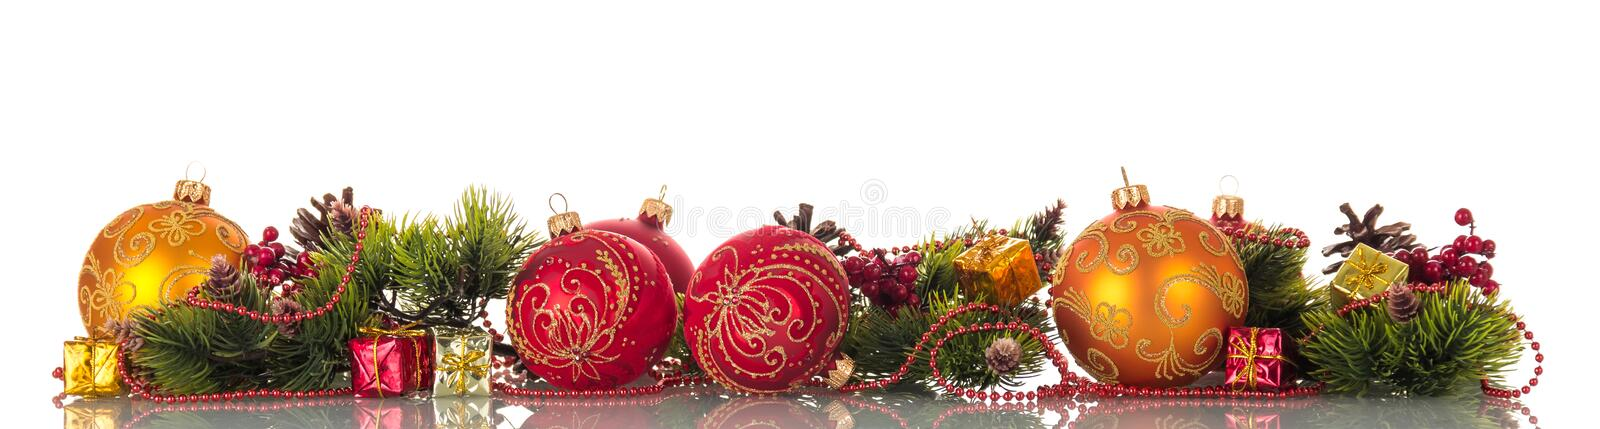 Bright colorful set of ornaments for Christmas tree stock image